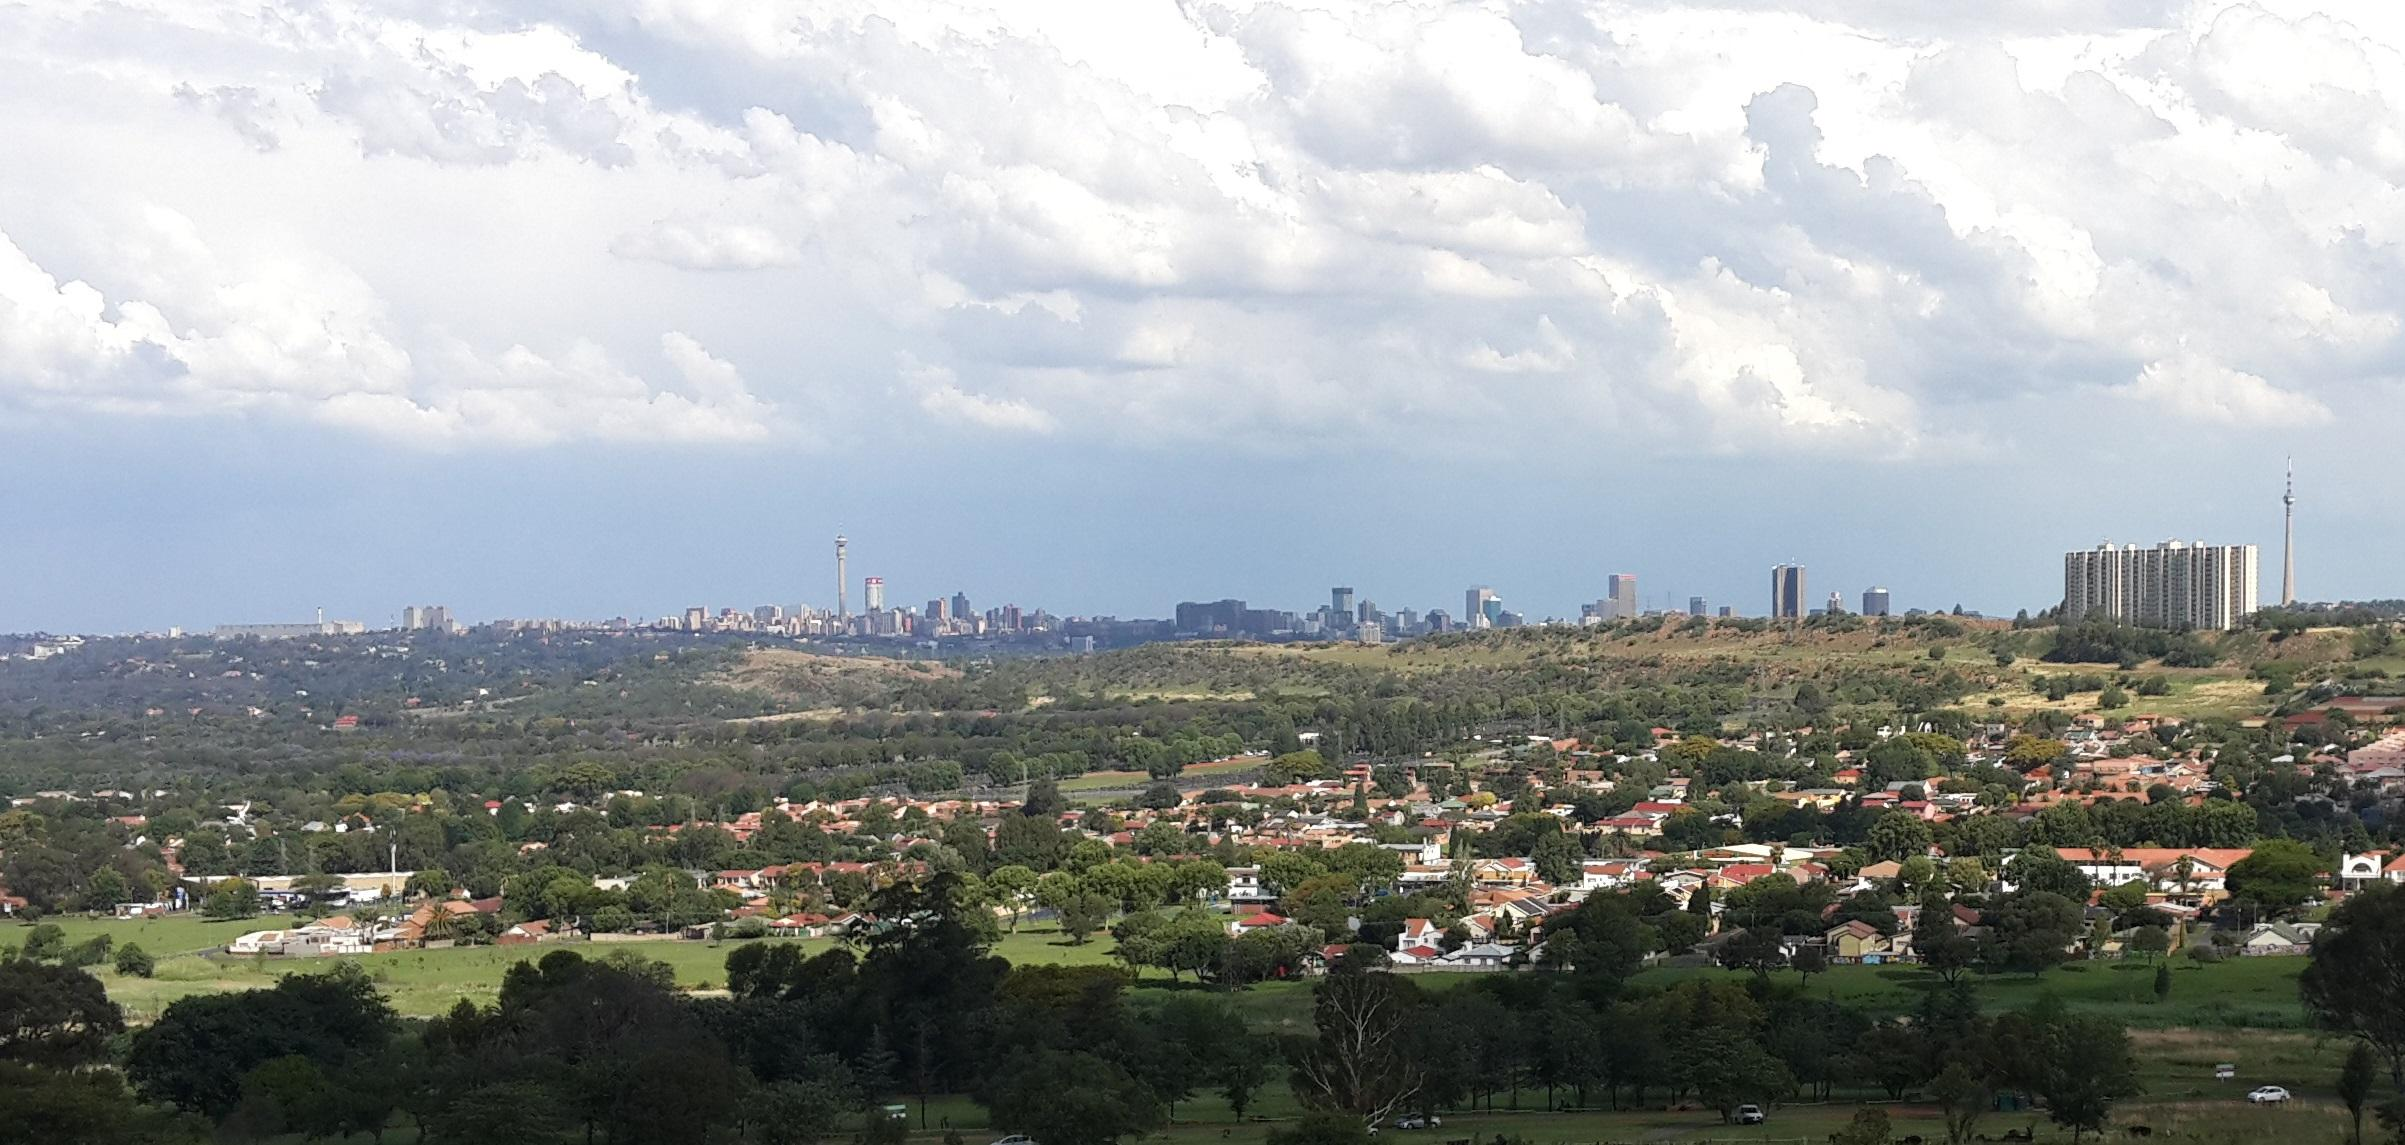 Amazing places to view the joburg skyline the heritage portal a thecheapjerseys Images